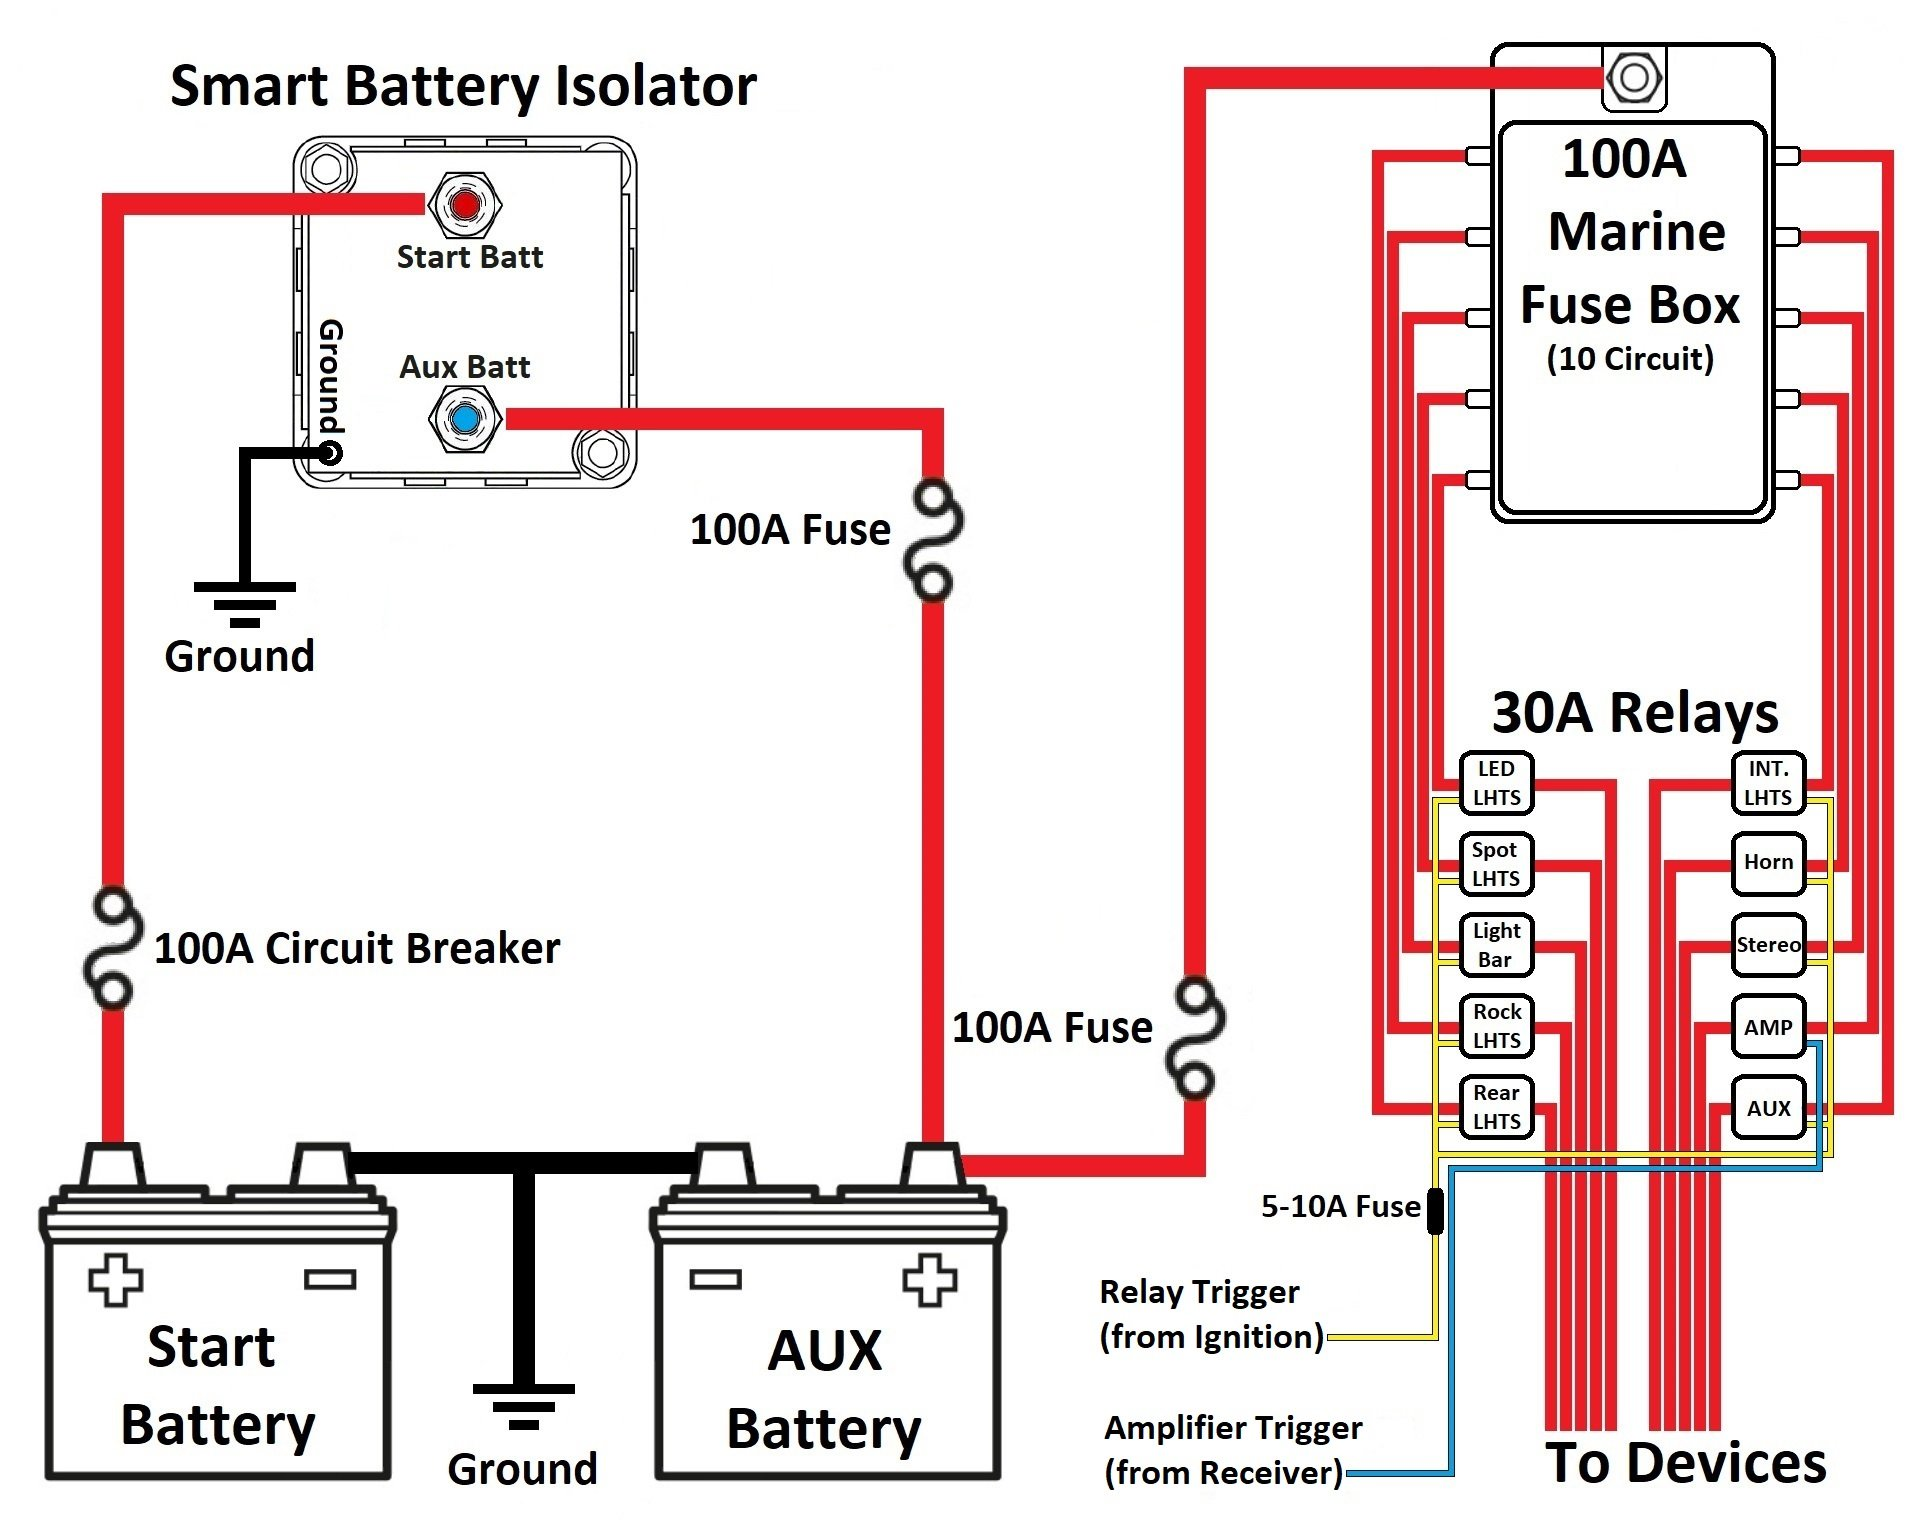 dual battery wiring diagram wiring diagram rh gregmadison co marine battery wiring for trolling motor marine battery wiring for electric trolling motor